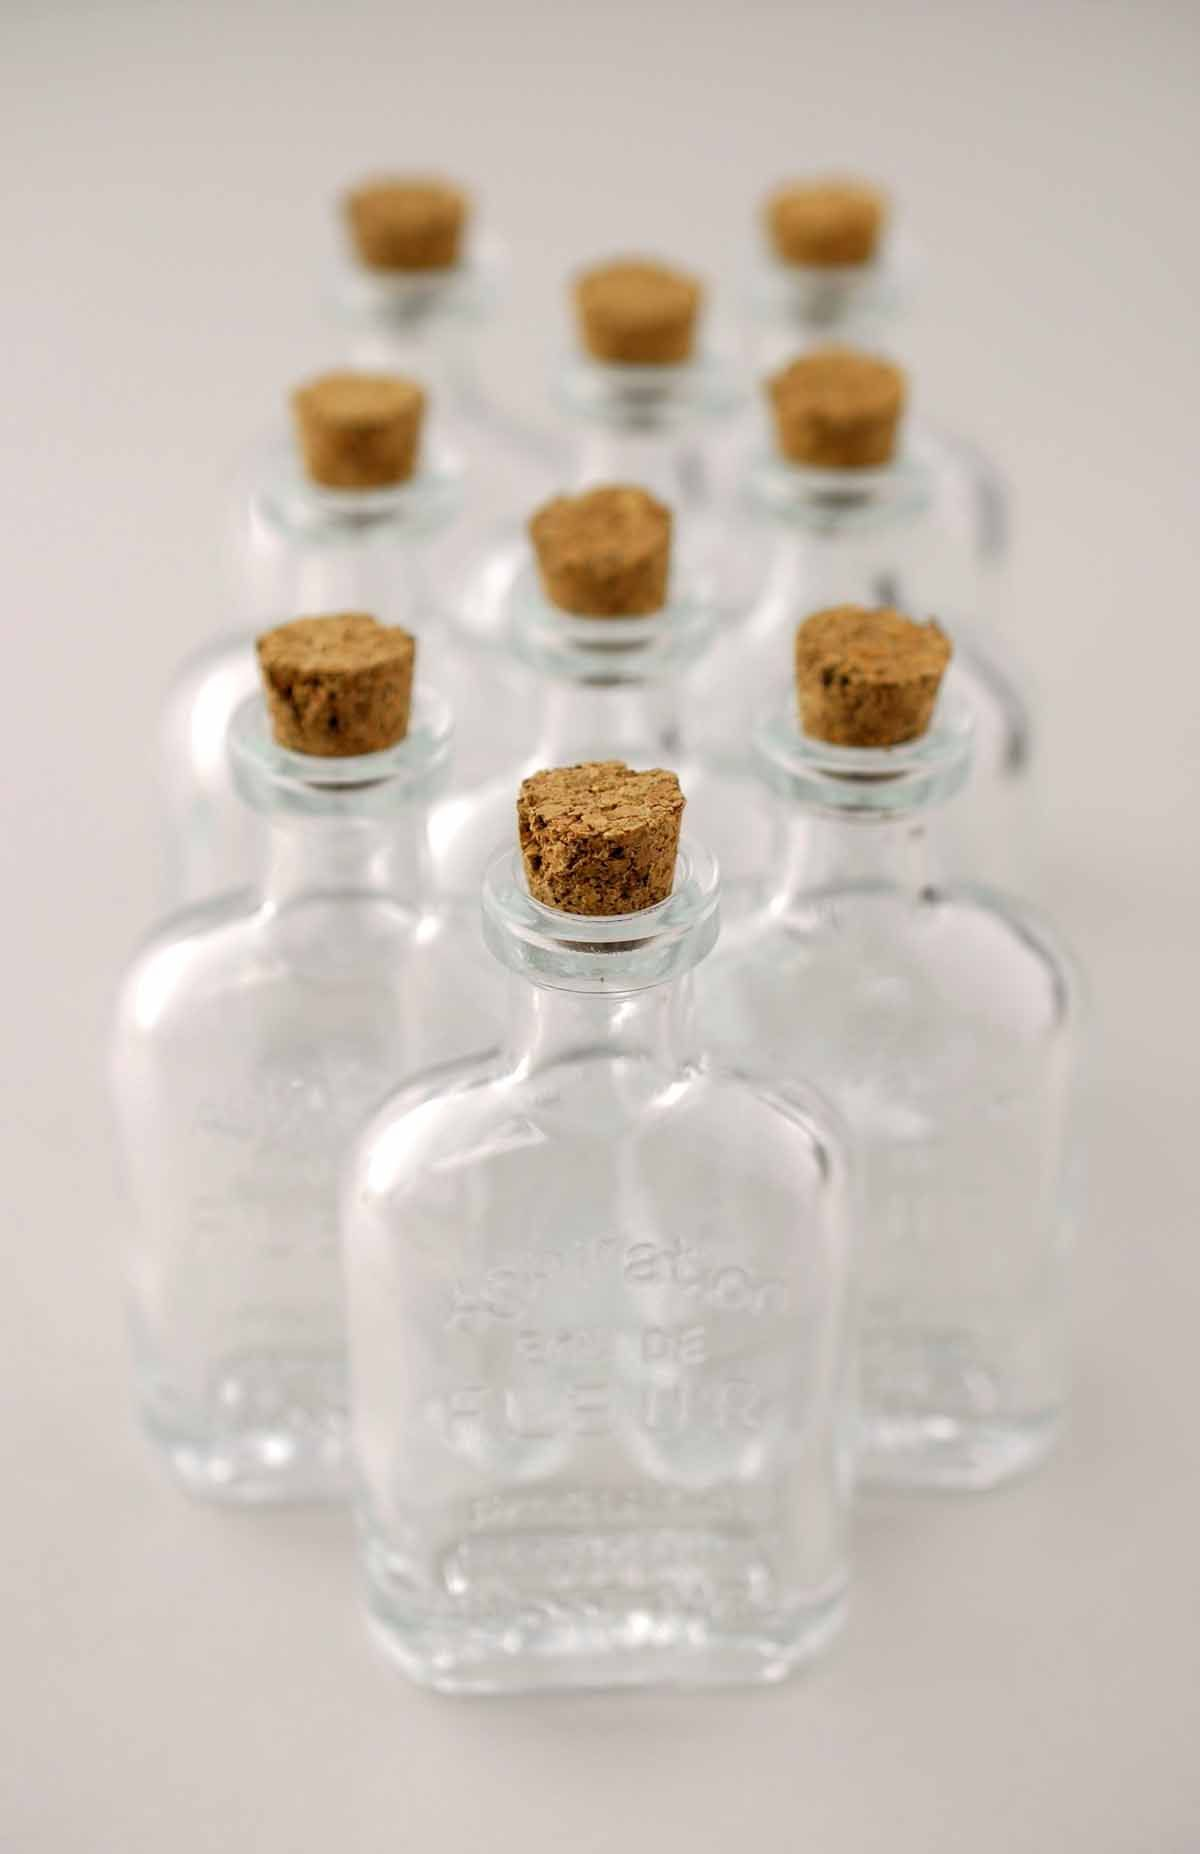 Mini glass bottles | Small glass bottles, Glass bottle and Cork